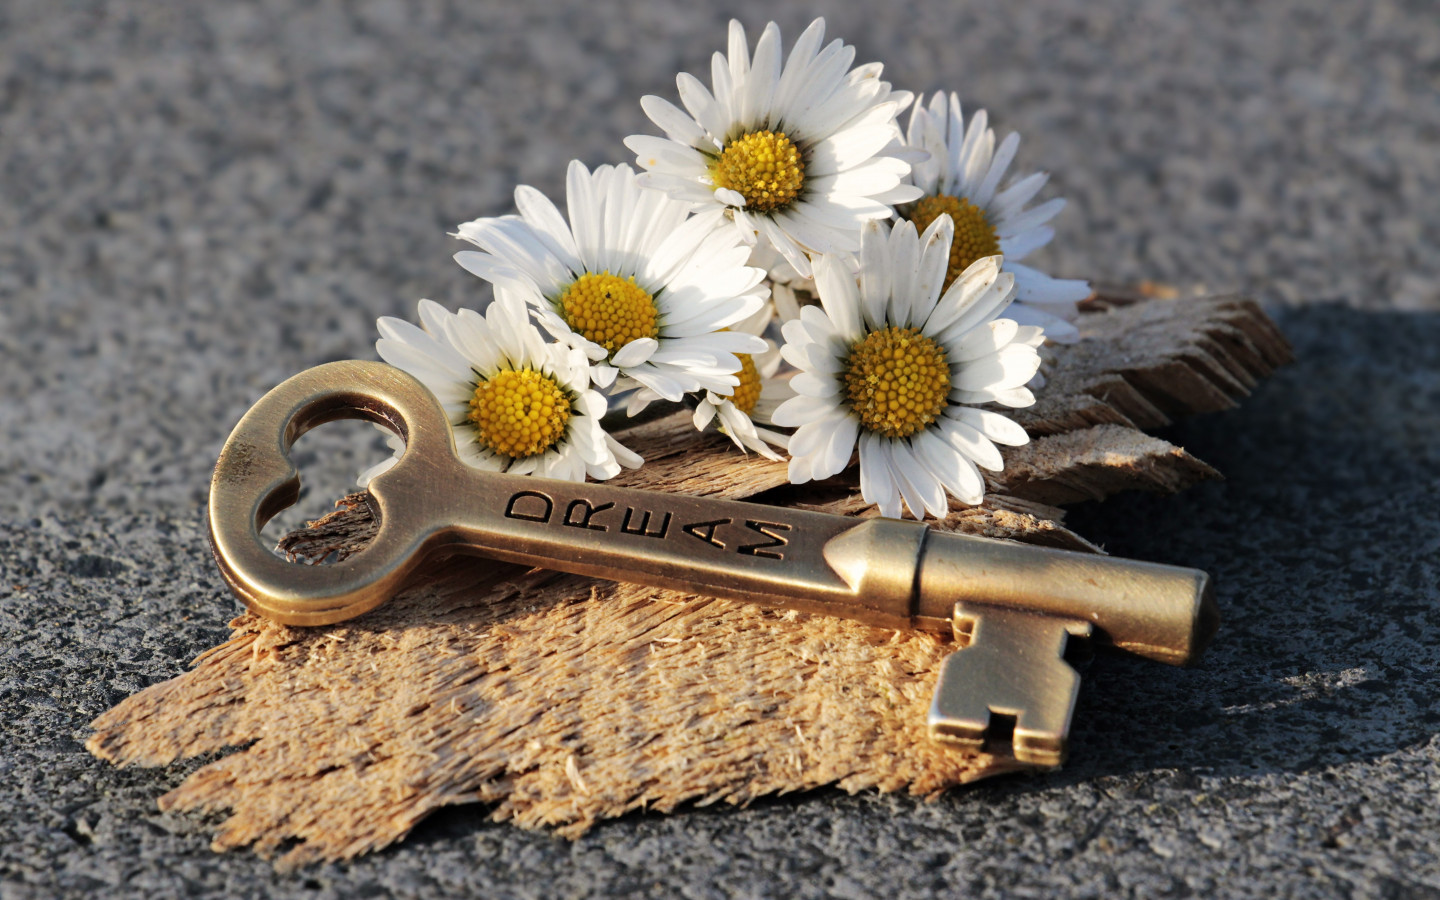 The dreams key and daisy flowers | 1440x900 wallpaper